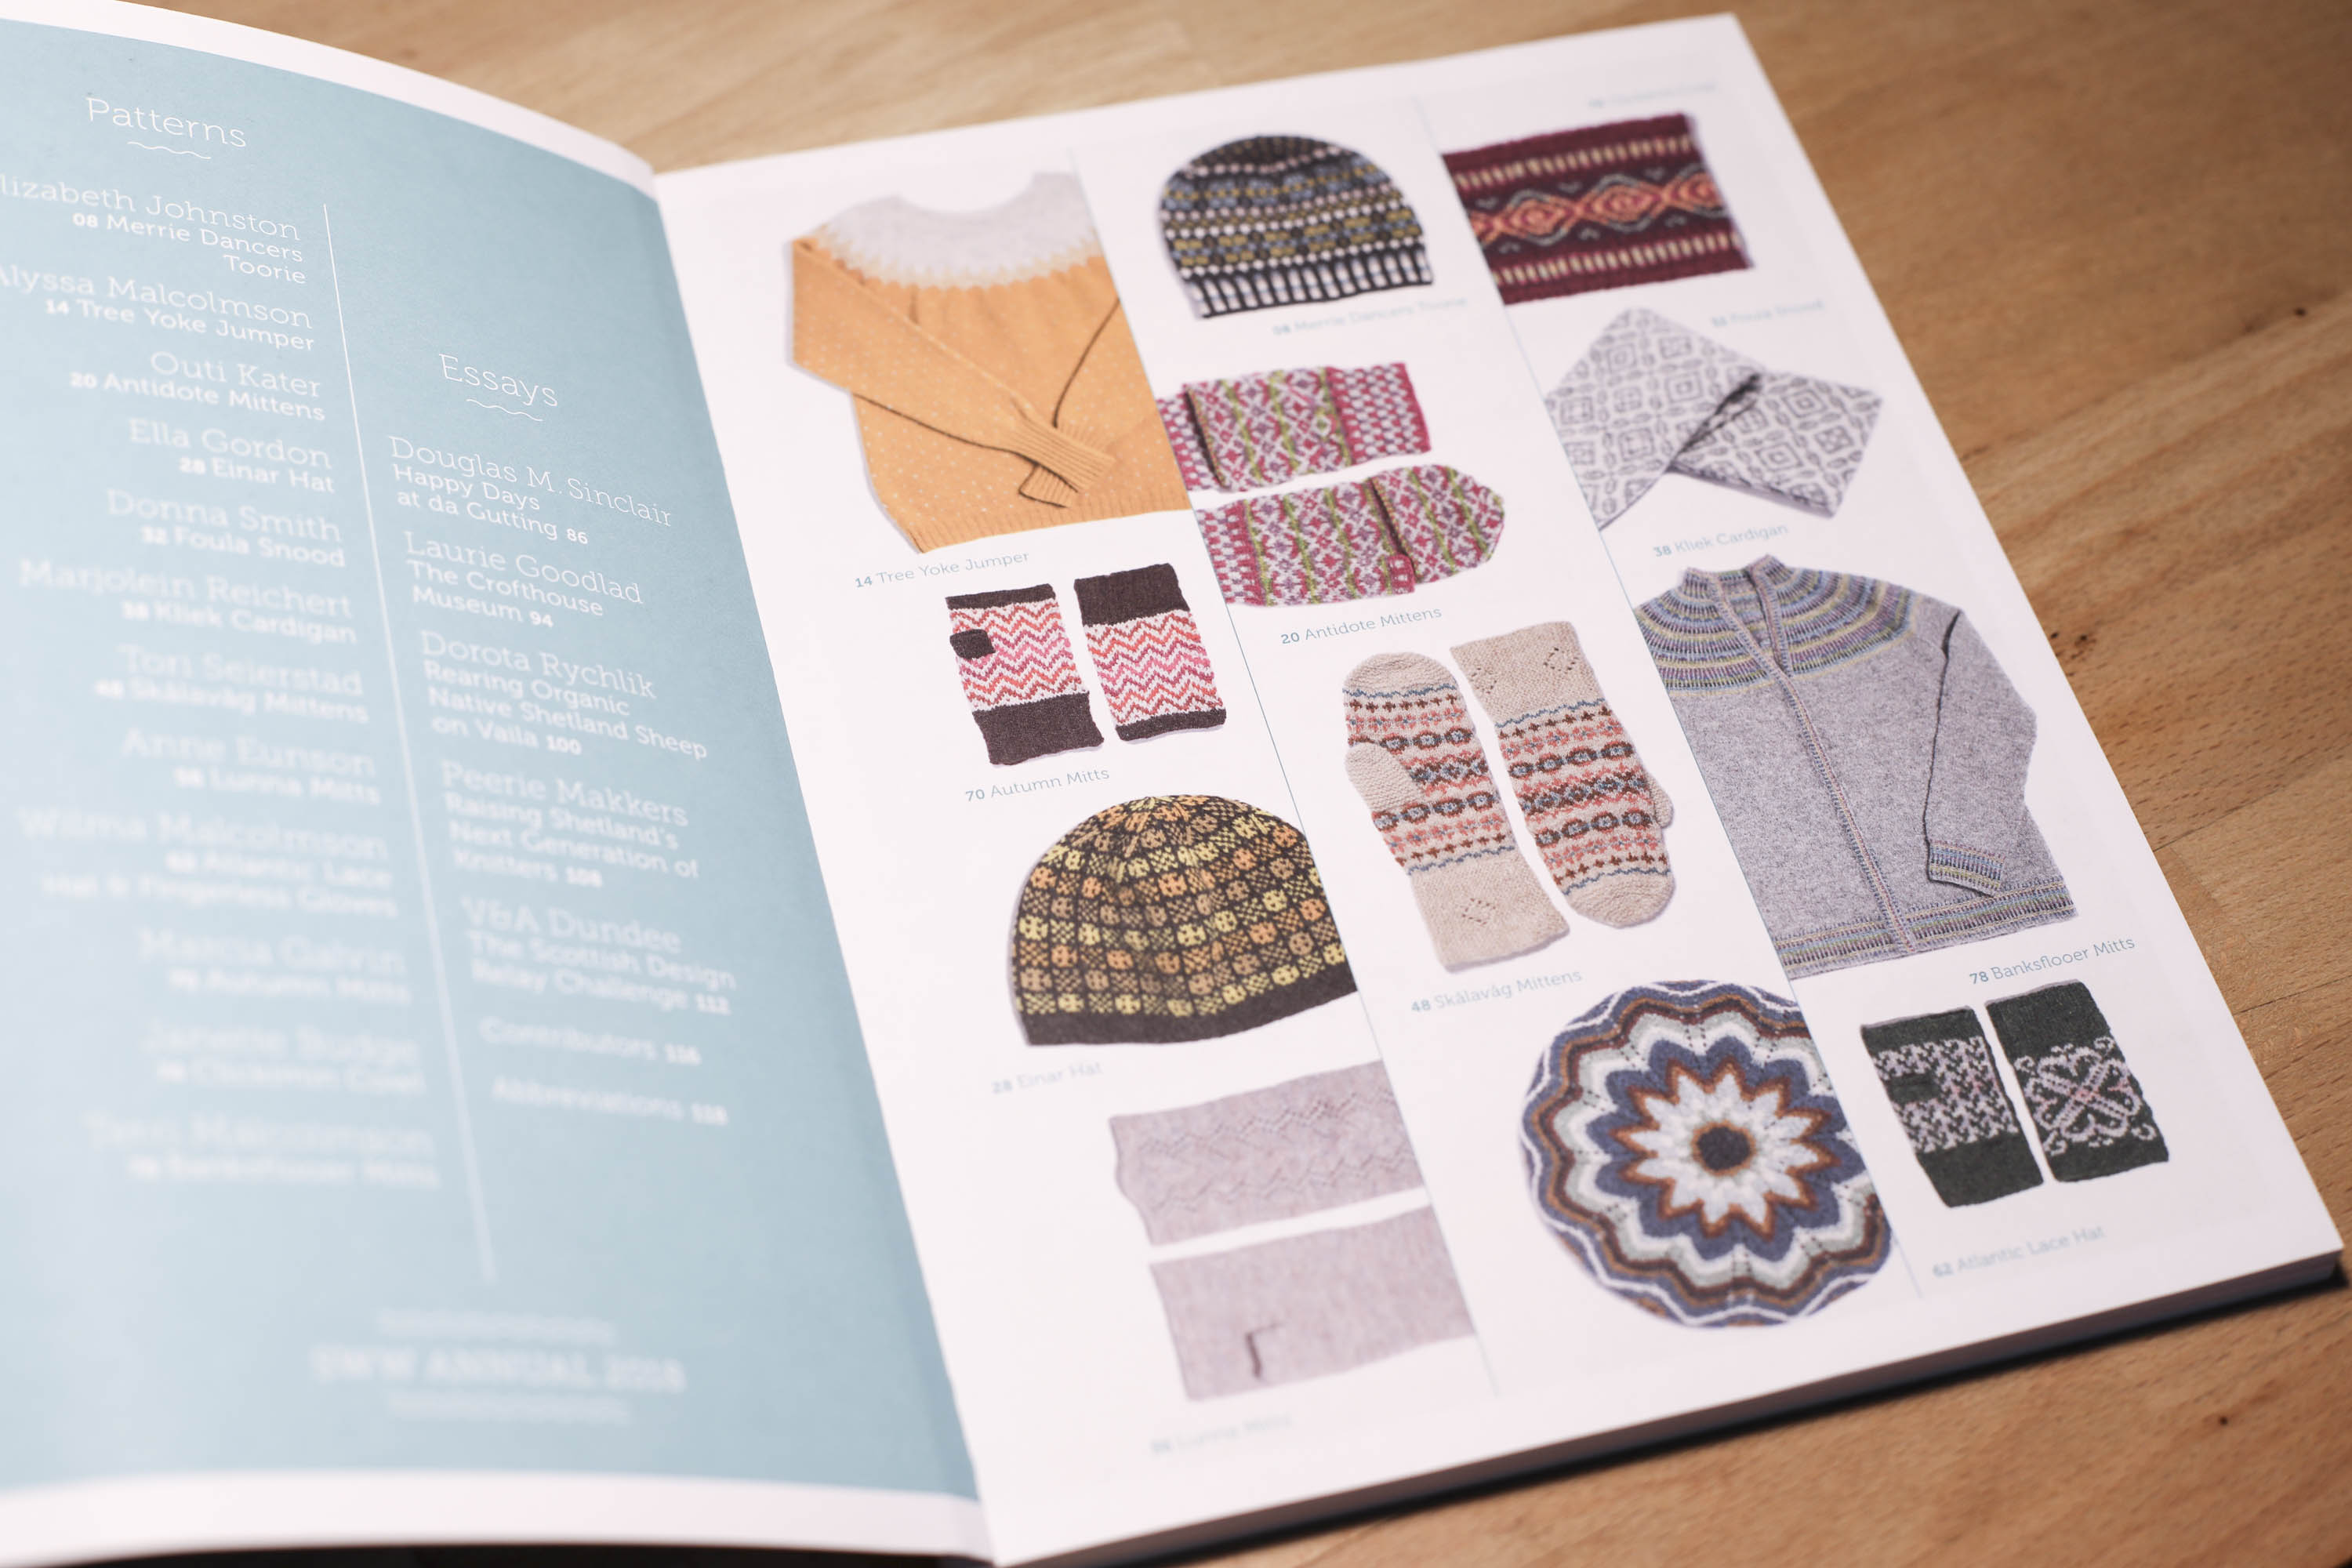 Shetland Wool Week annual 2018, open at page showing 12 patterns included